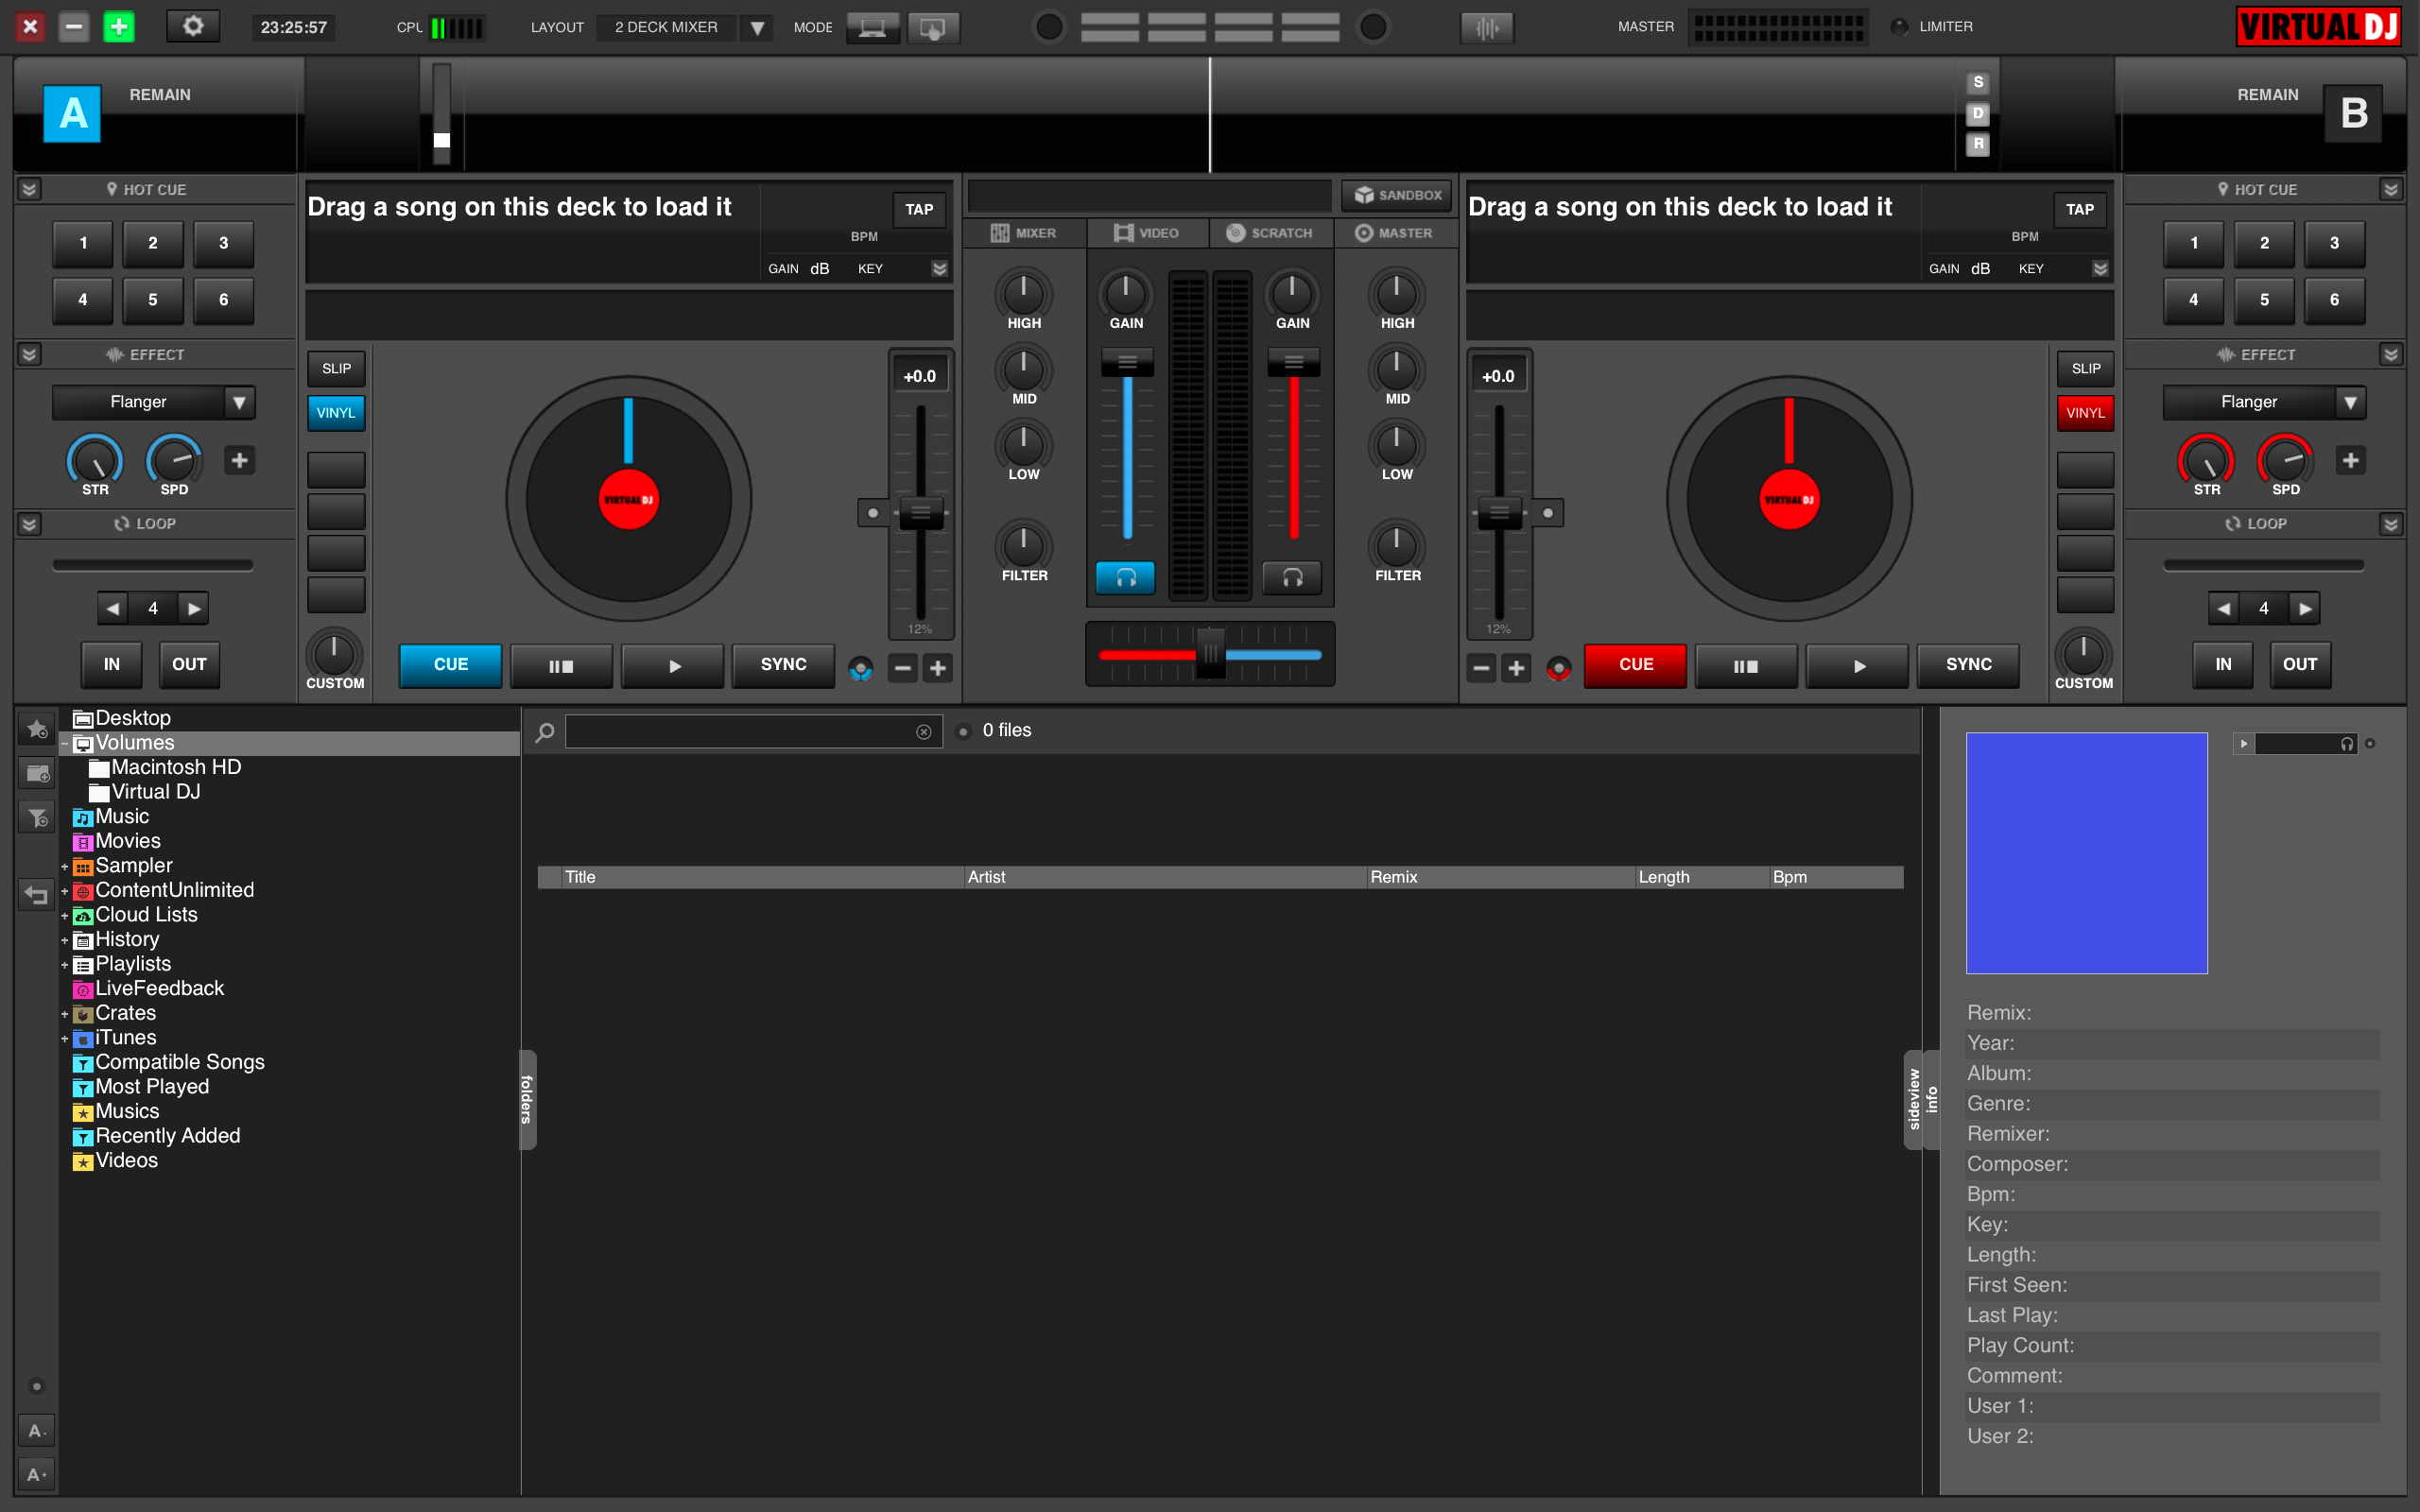 virtual dj 8 beatlock